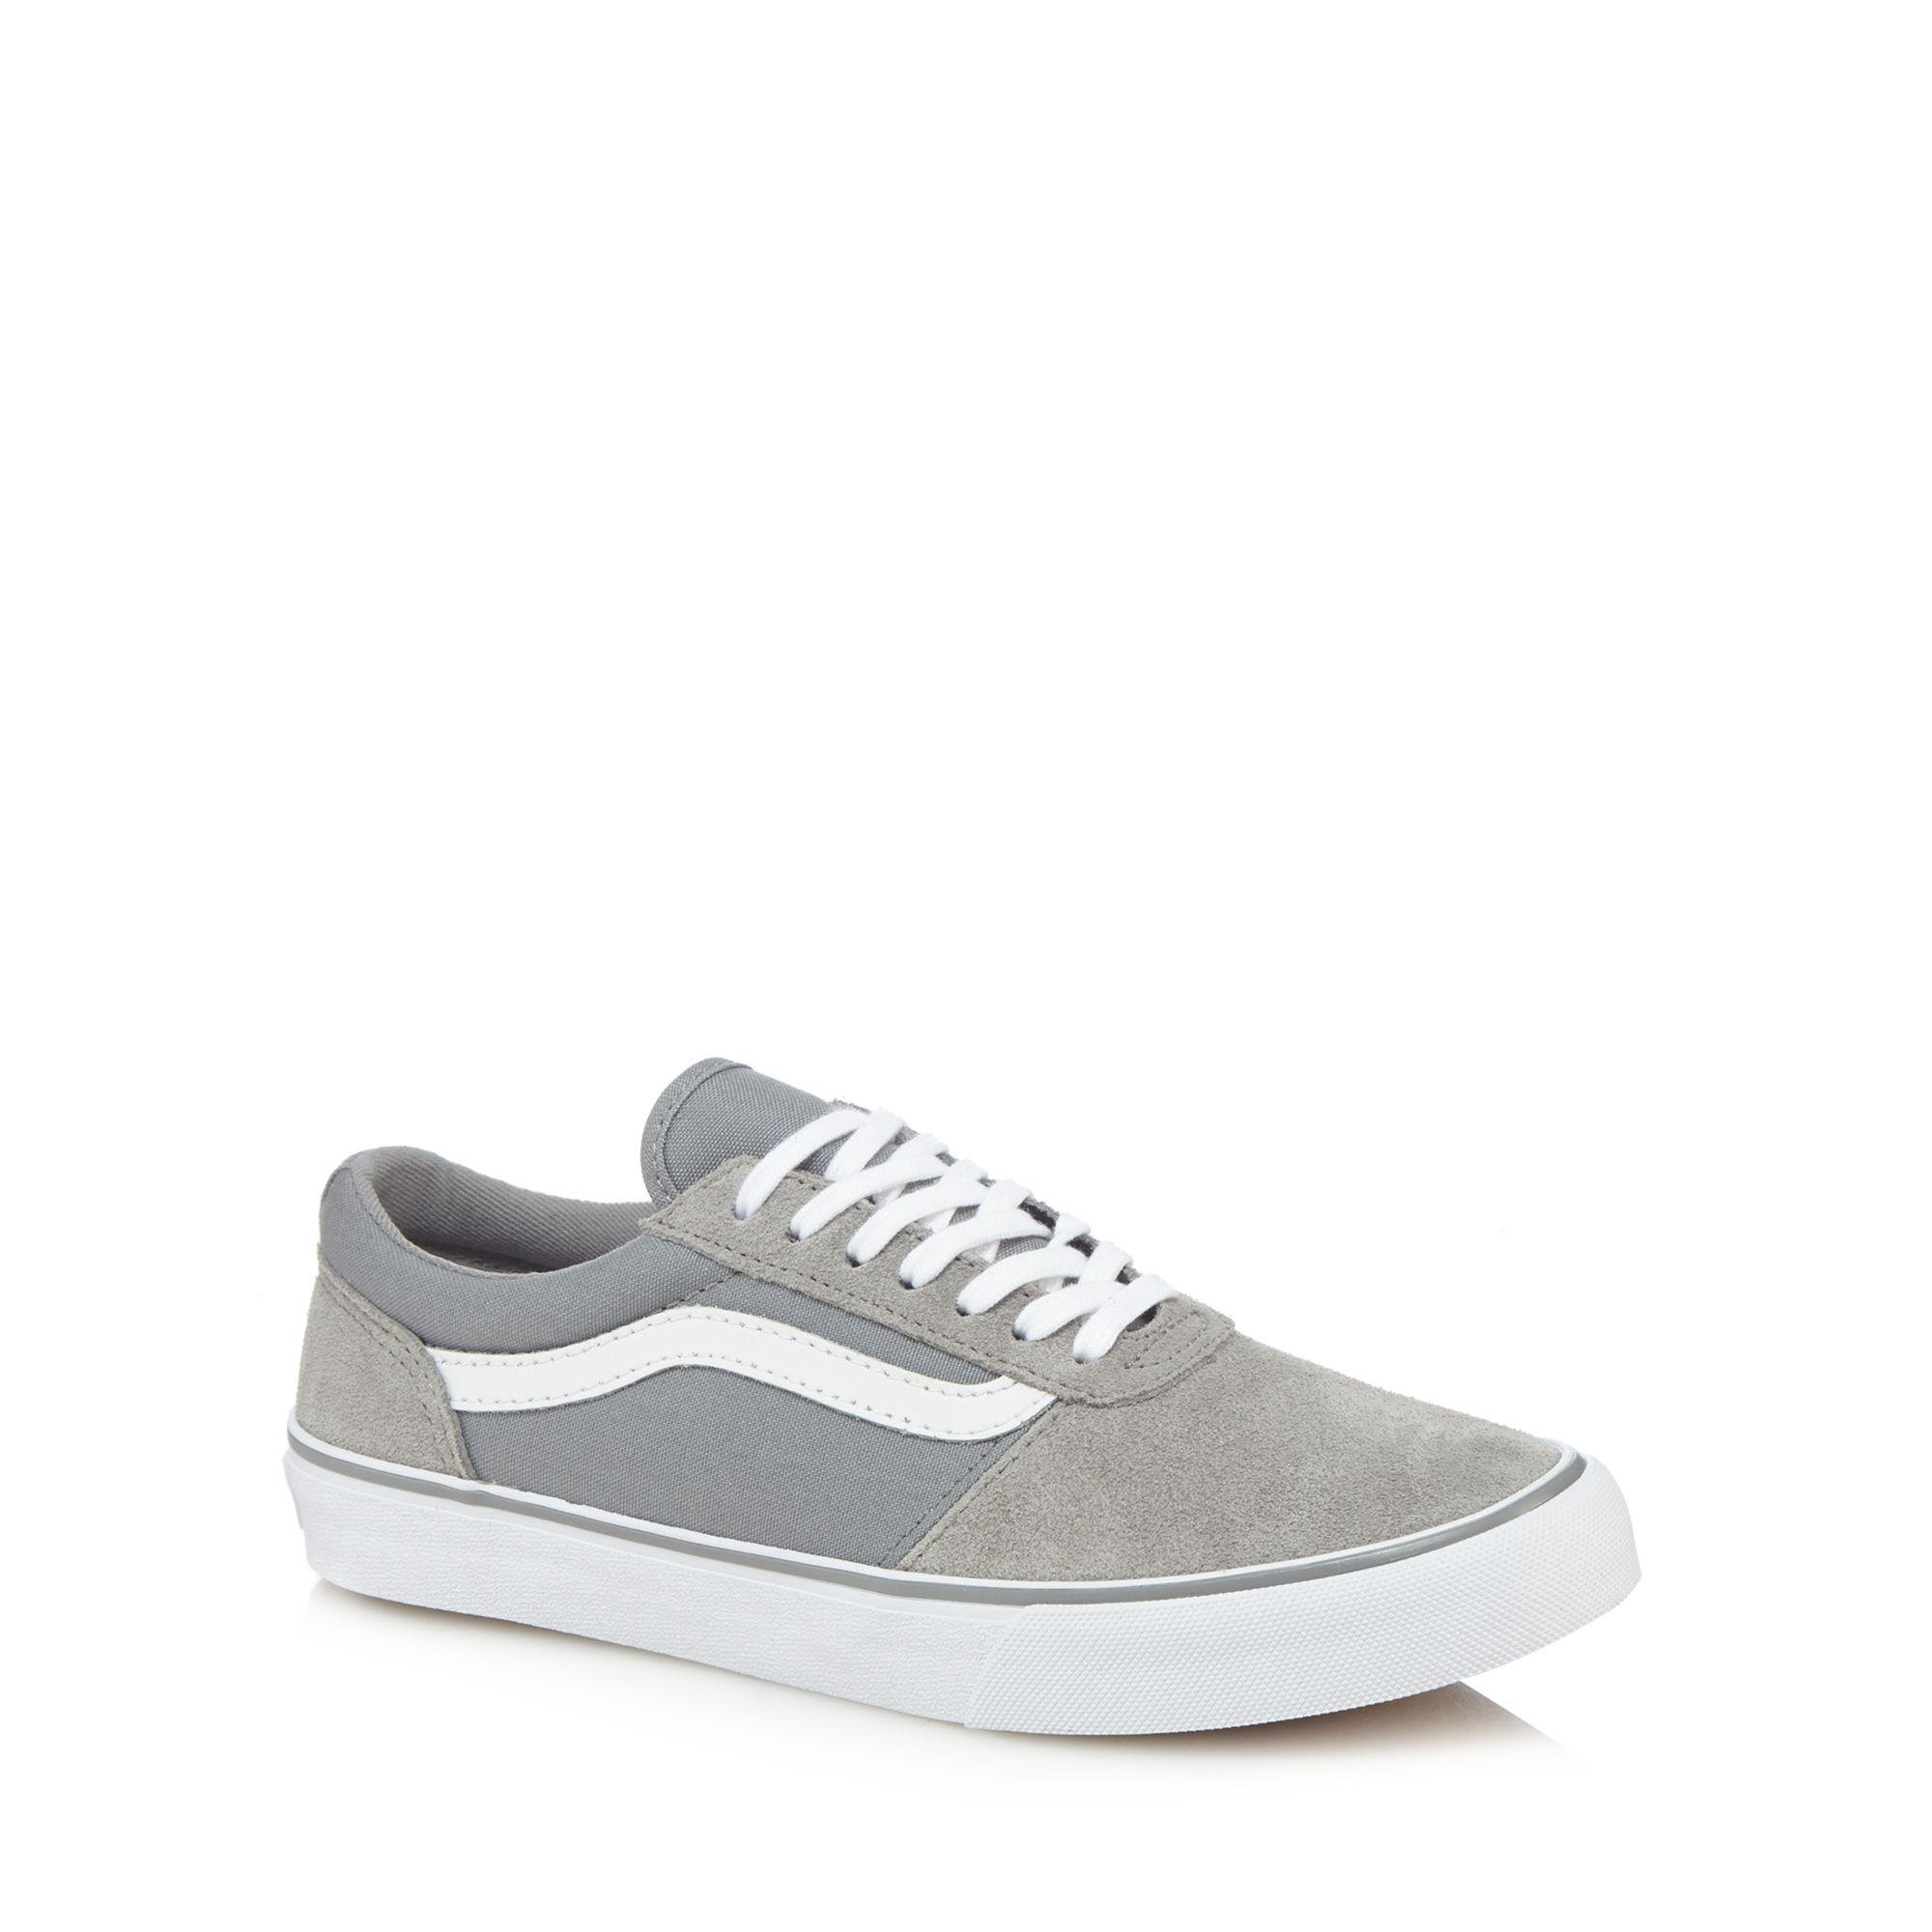 Grey 'Maddie' high top trainers buy cheap visa payment fake sale online for sale the cheapest for sale for sale N6snWCd